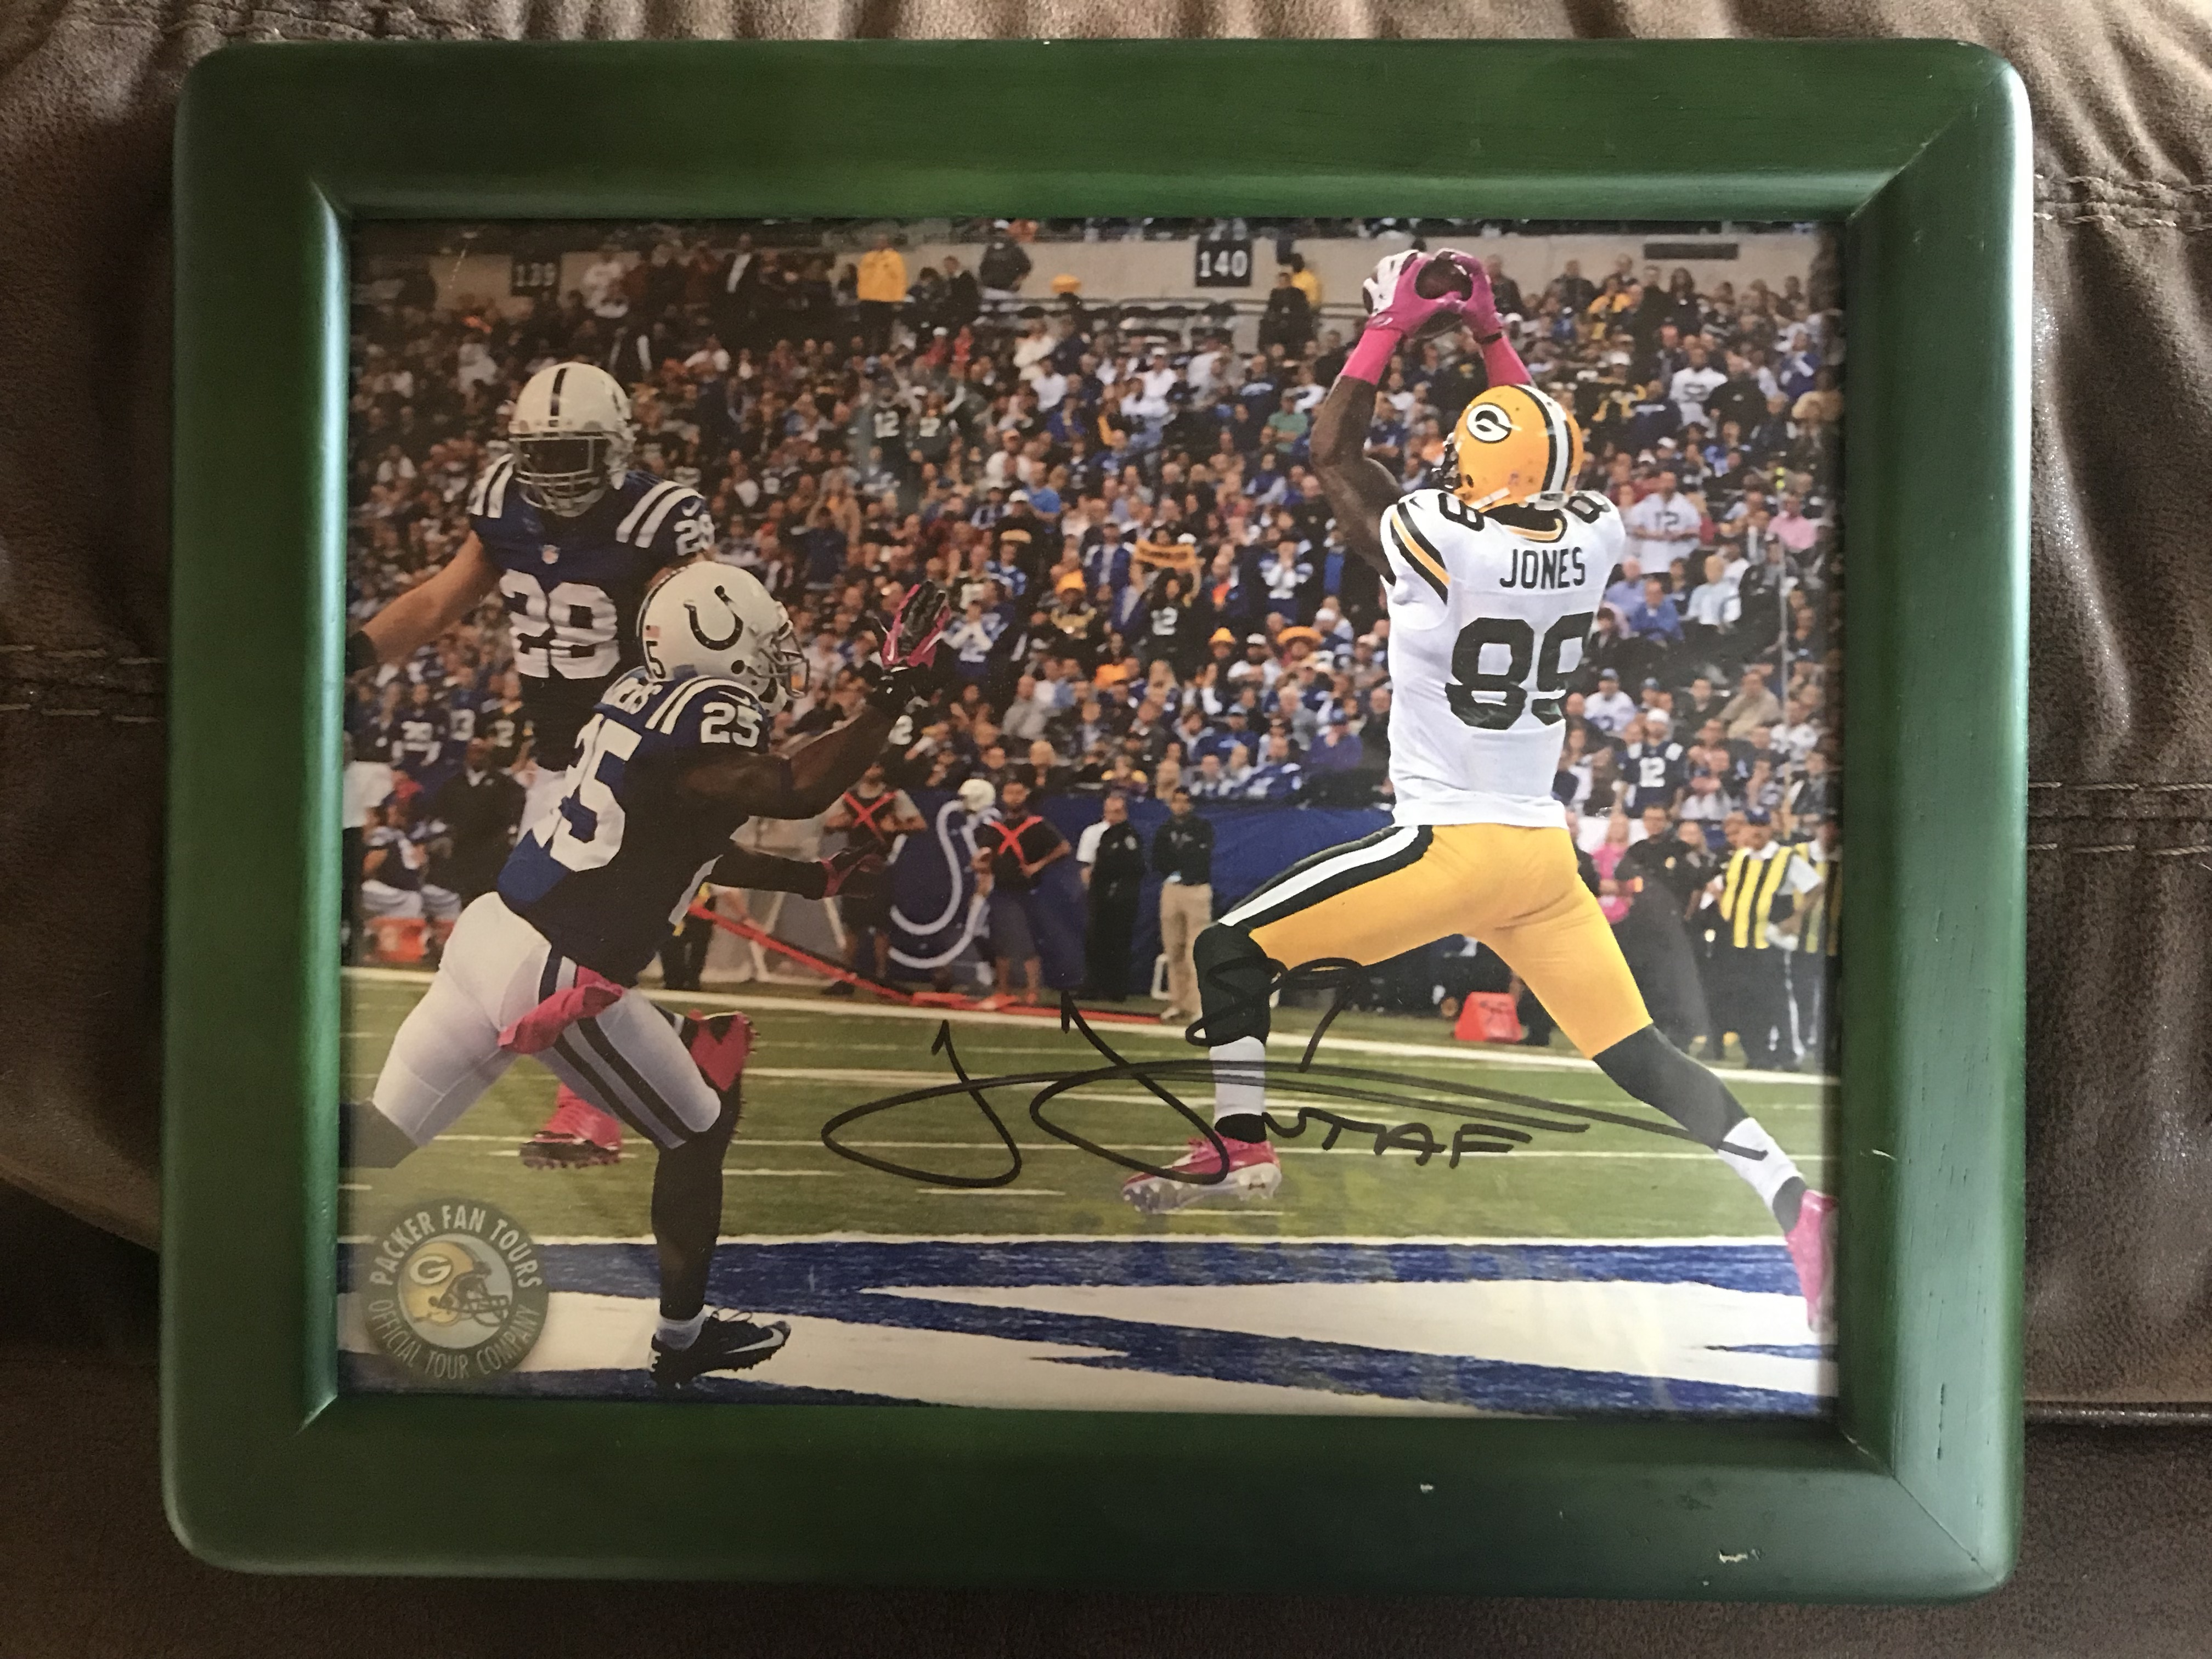 James Jones Autographed Photo